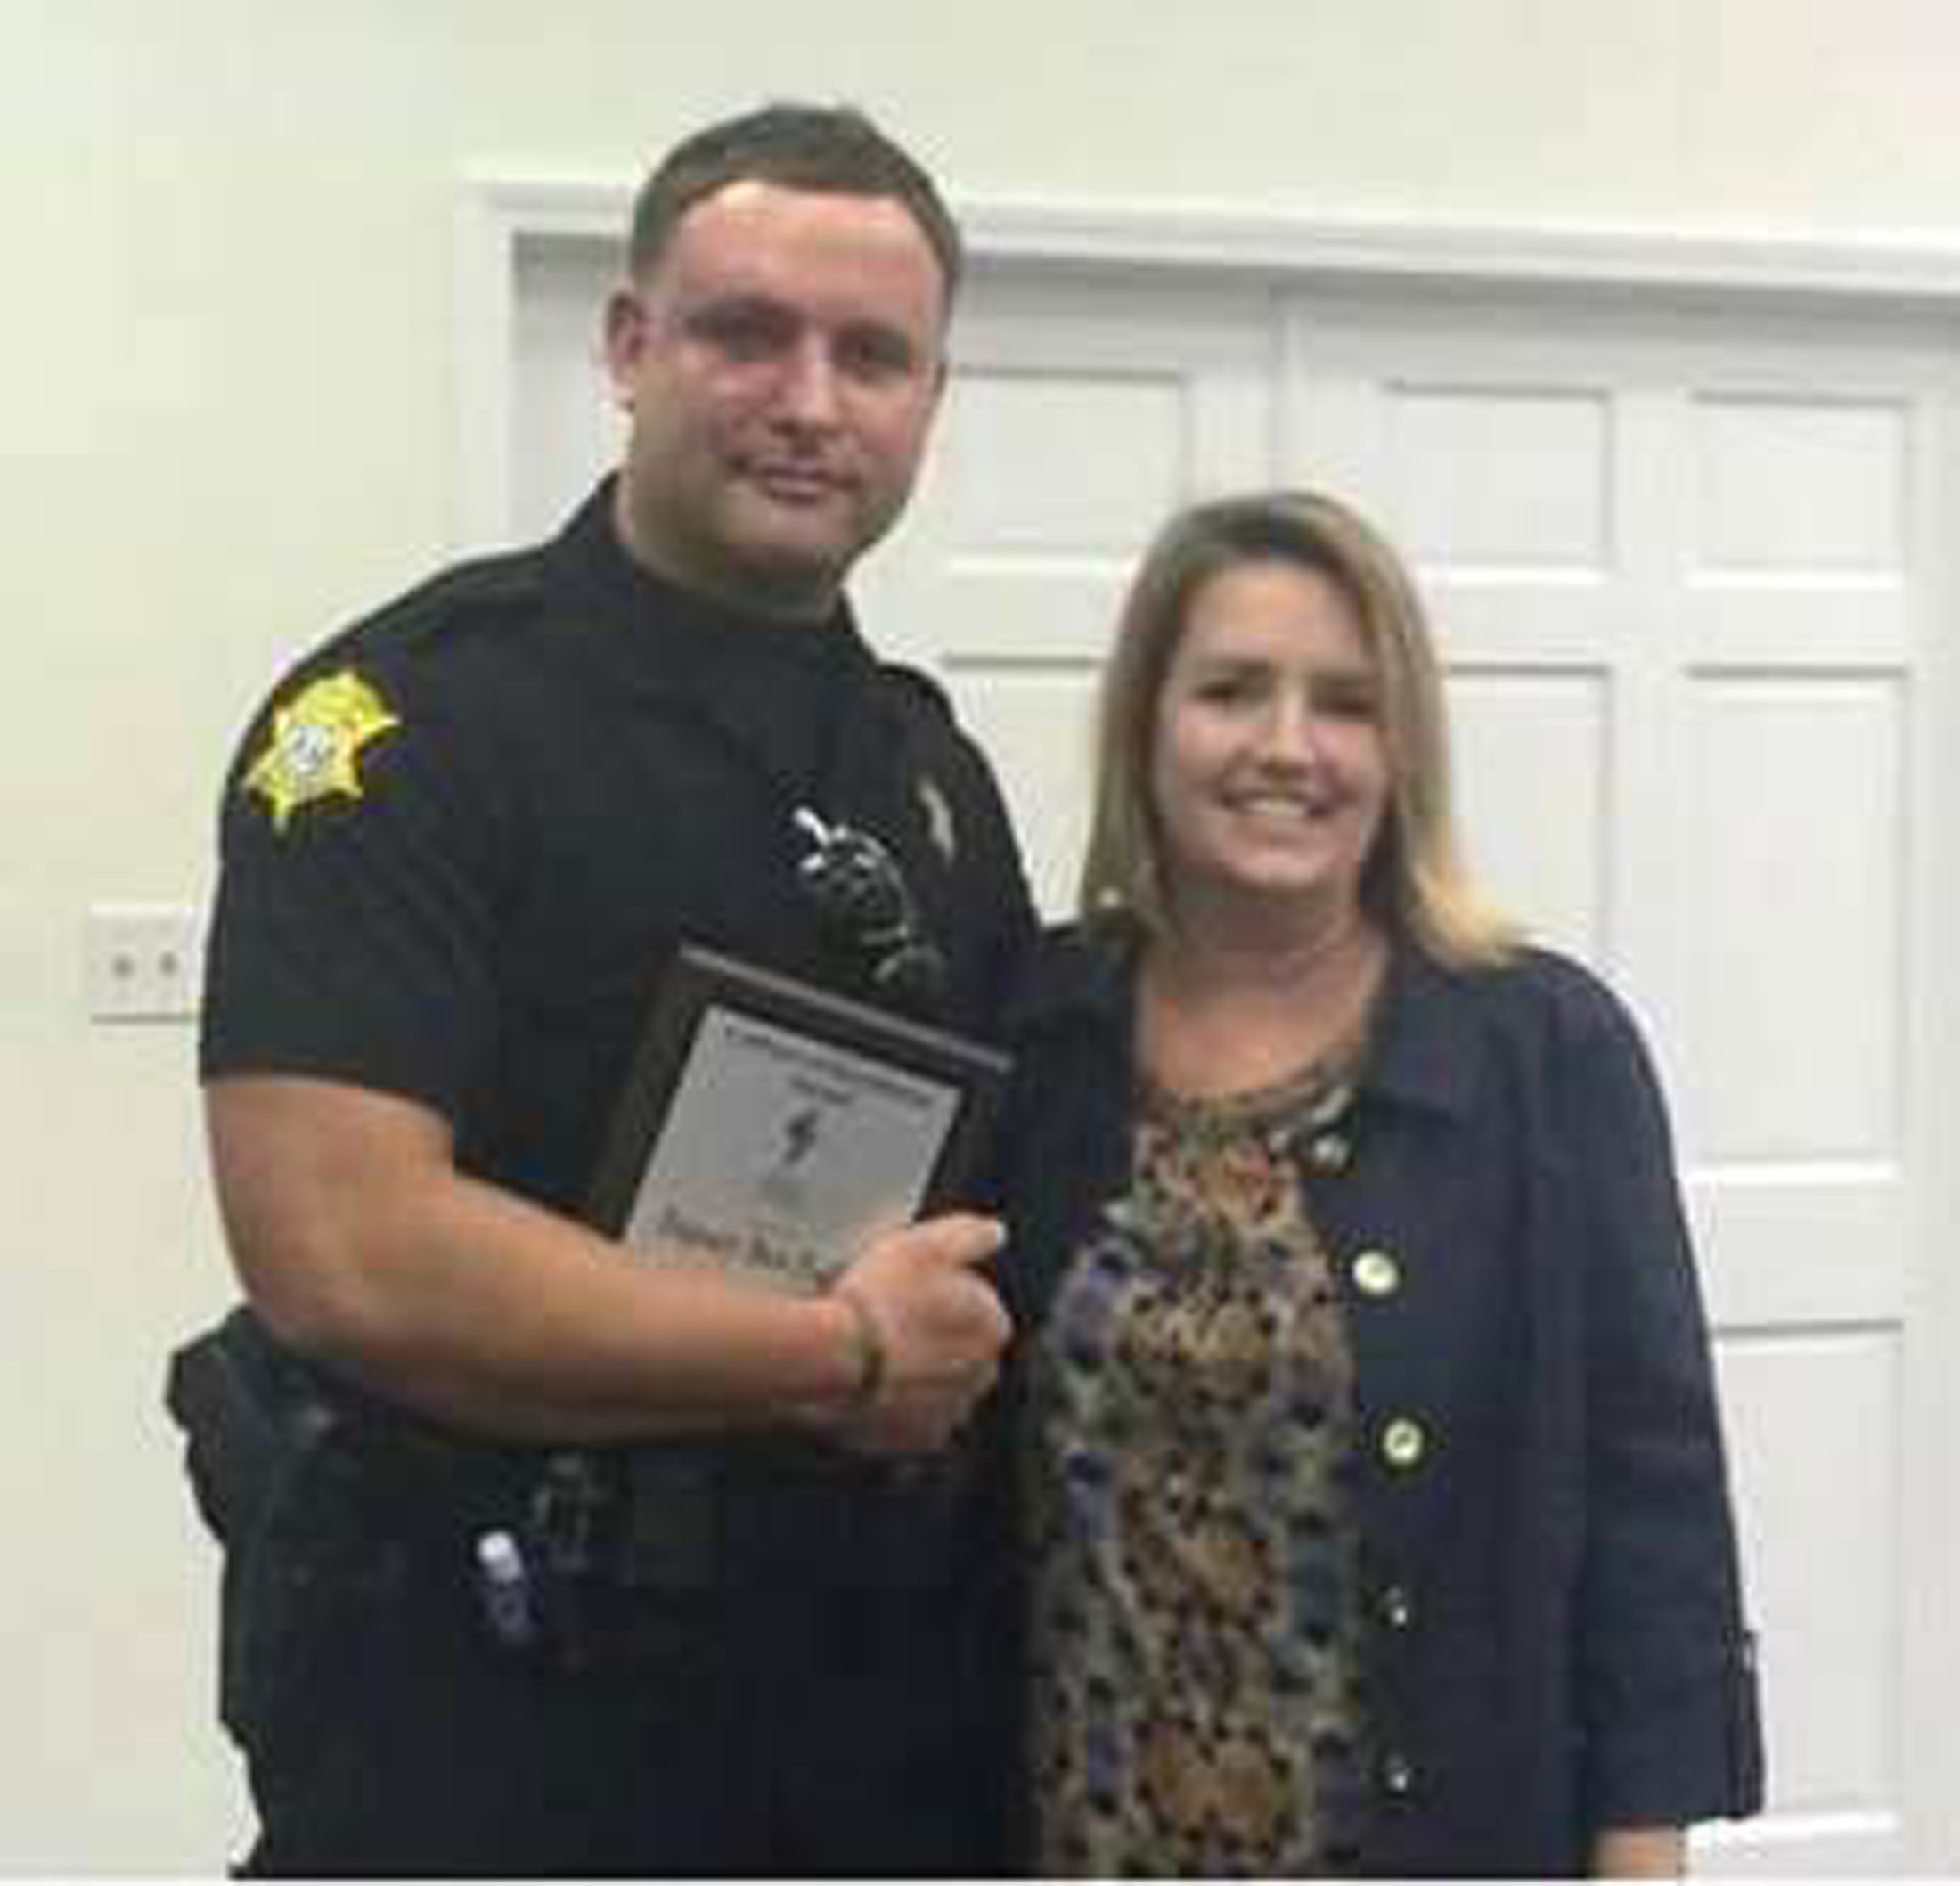 Richland County Sheriff's Department Officer Senior Deputy Ben Fields, left, is pictured with Lonnie B. Nelson Elementary School Principal Karen Beaman after receiving Culture of Excellence Award, in Columbia, S.C., Nov. 12, 2014.